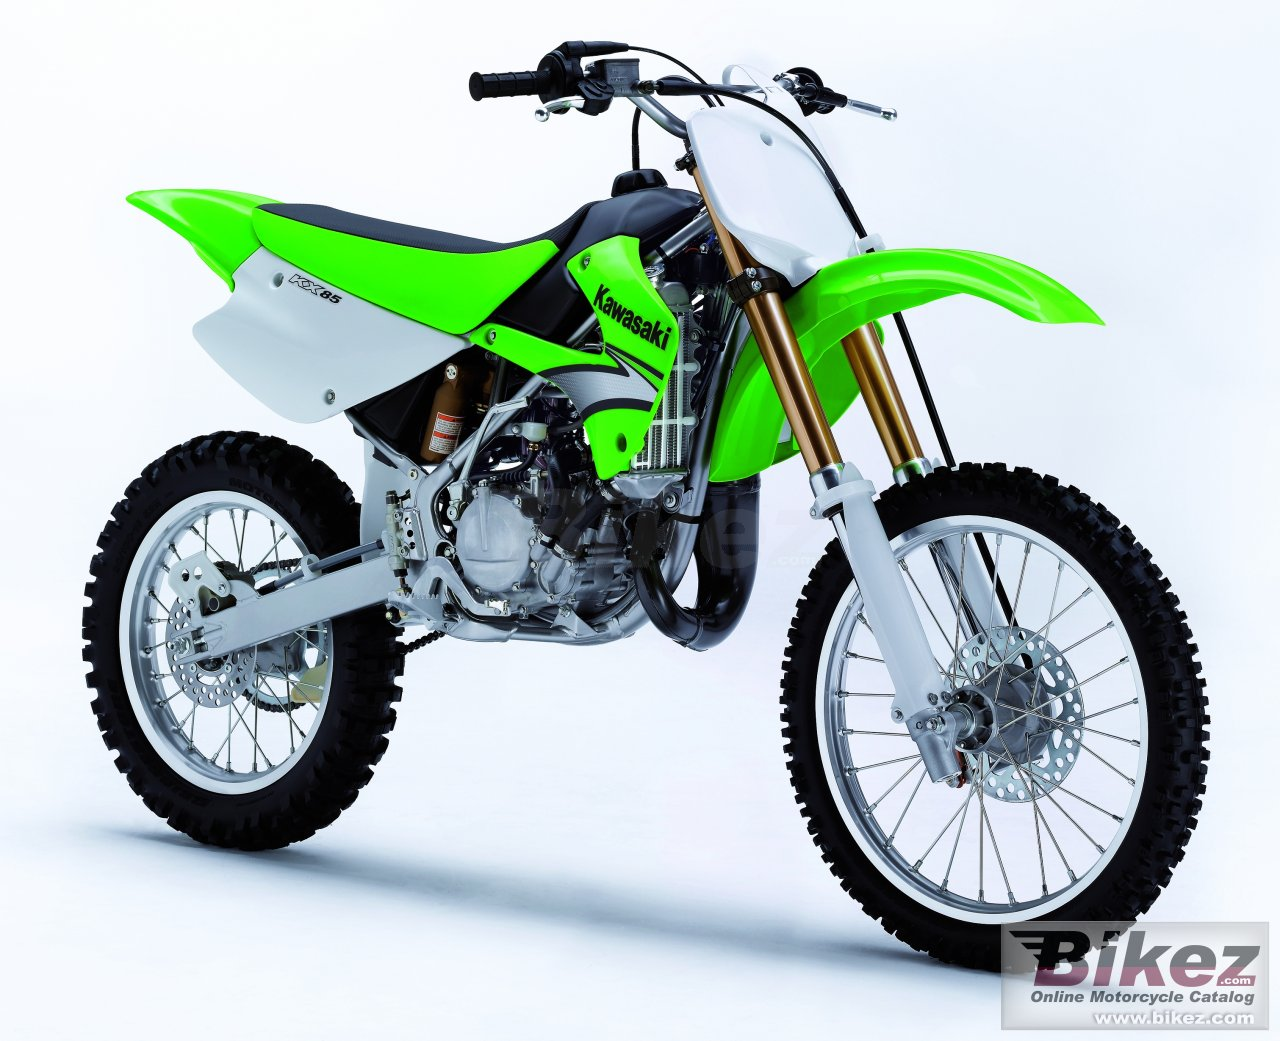 Big Kawasaki kx85 ii picture and wallpaper from Bikez.com